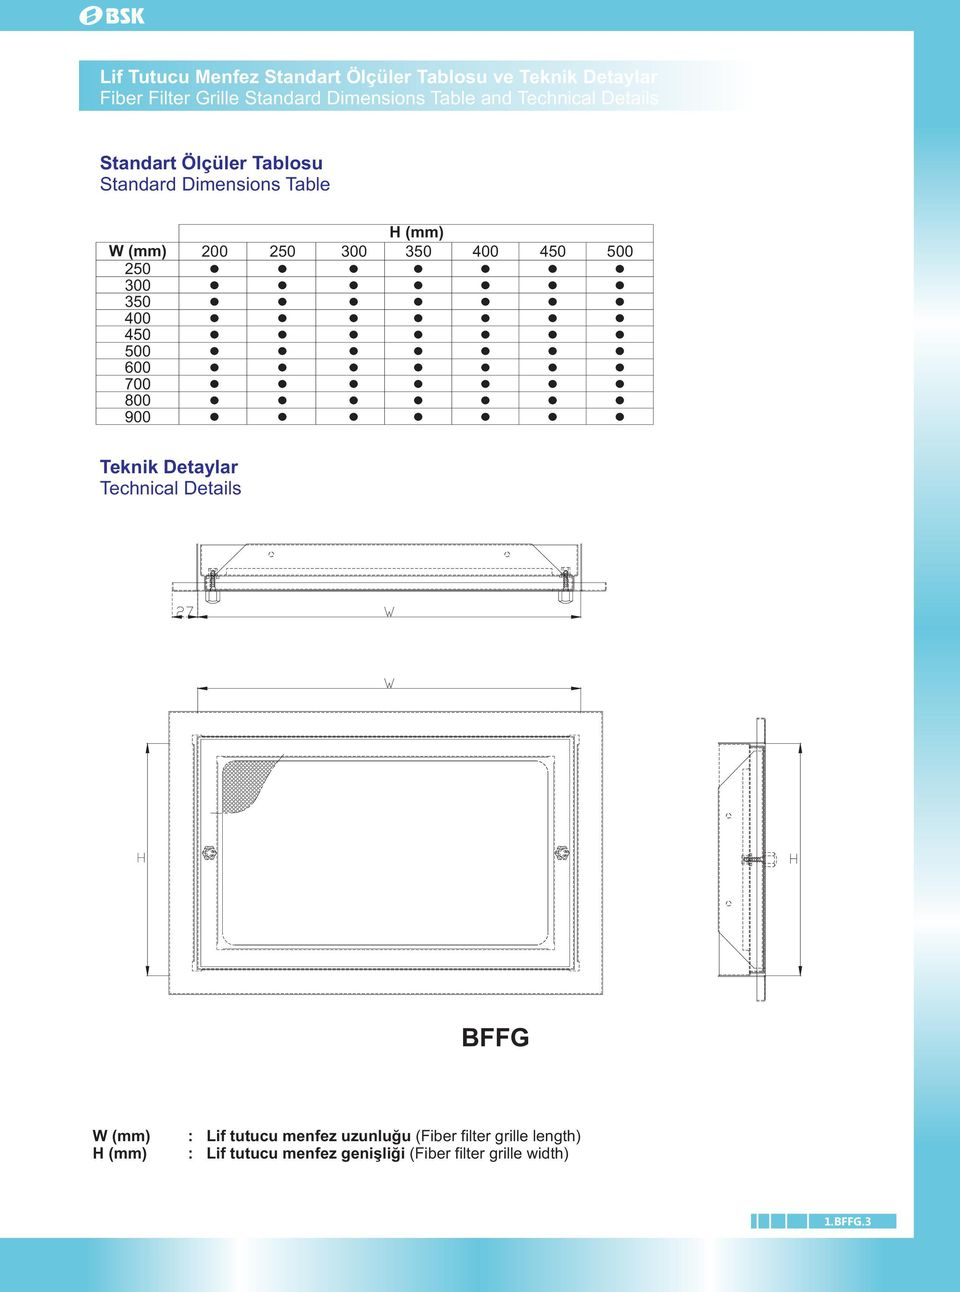 700 800 900 H (mm) 00 50 300 350 400 450 500 Teknik Detaylar Technical Details BFFG W (mm) H (mm) : Lif